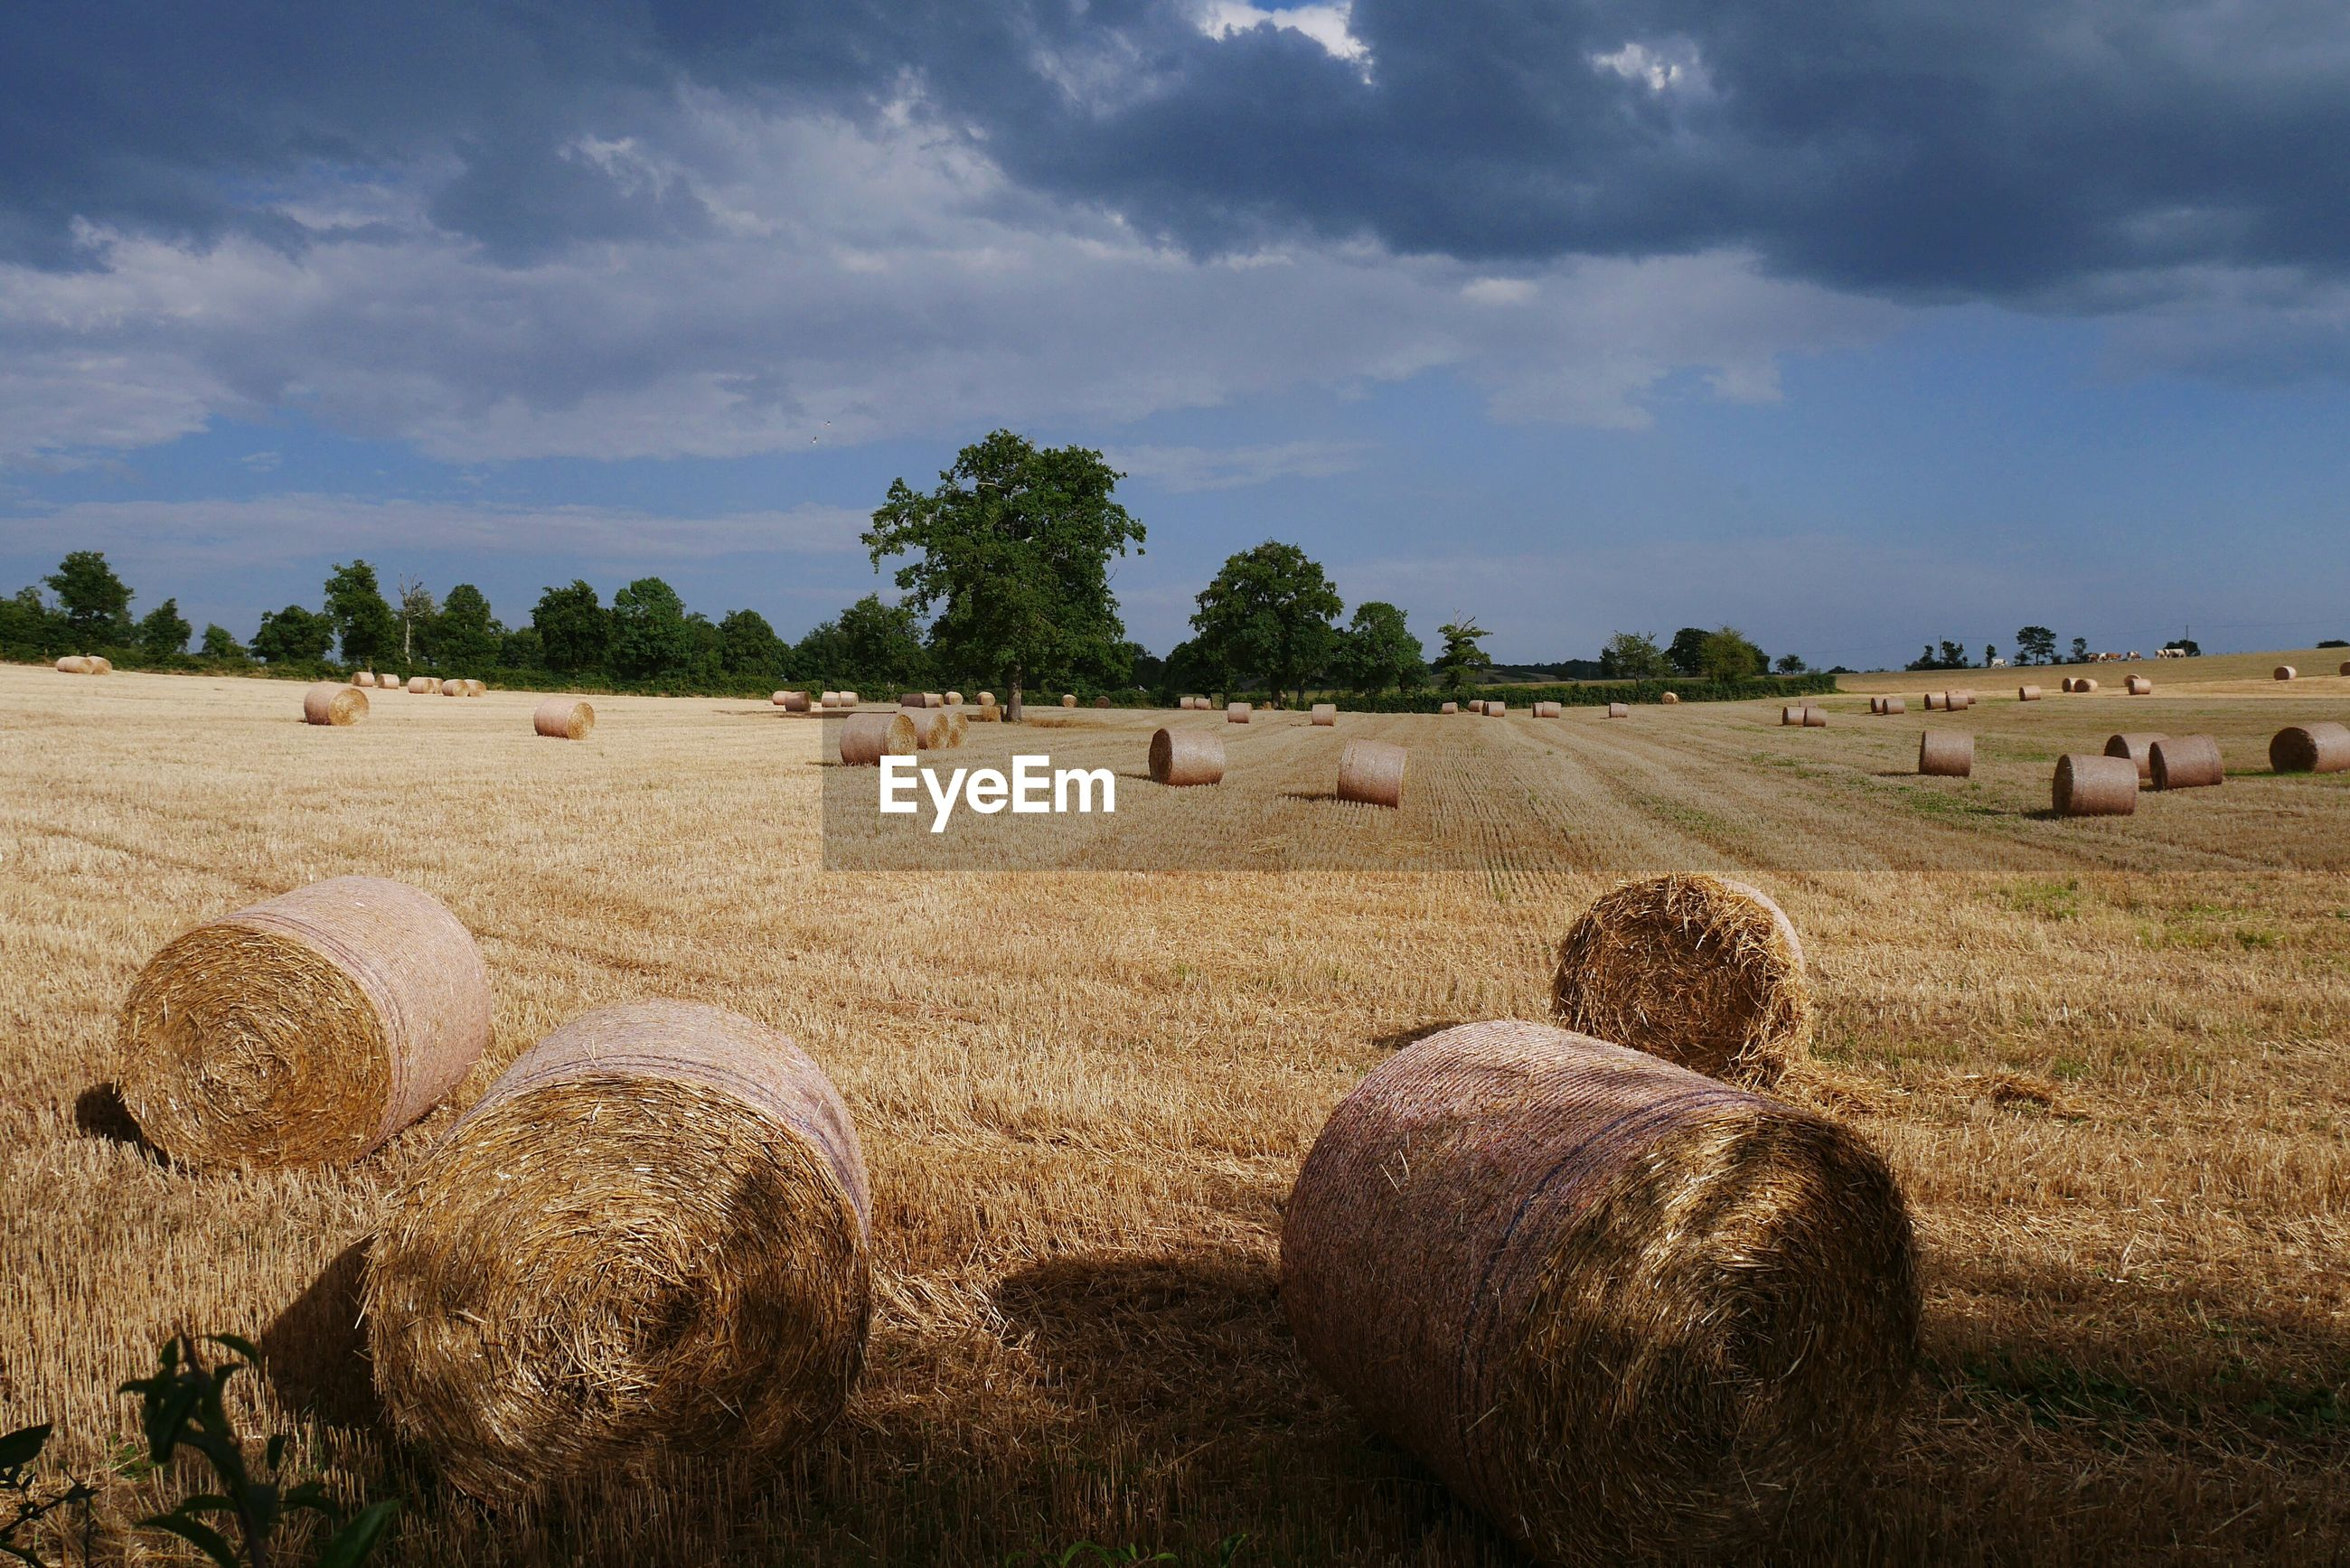 VIEW OF HAY BALES ON FIELD AGAINST SKY